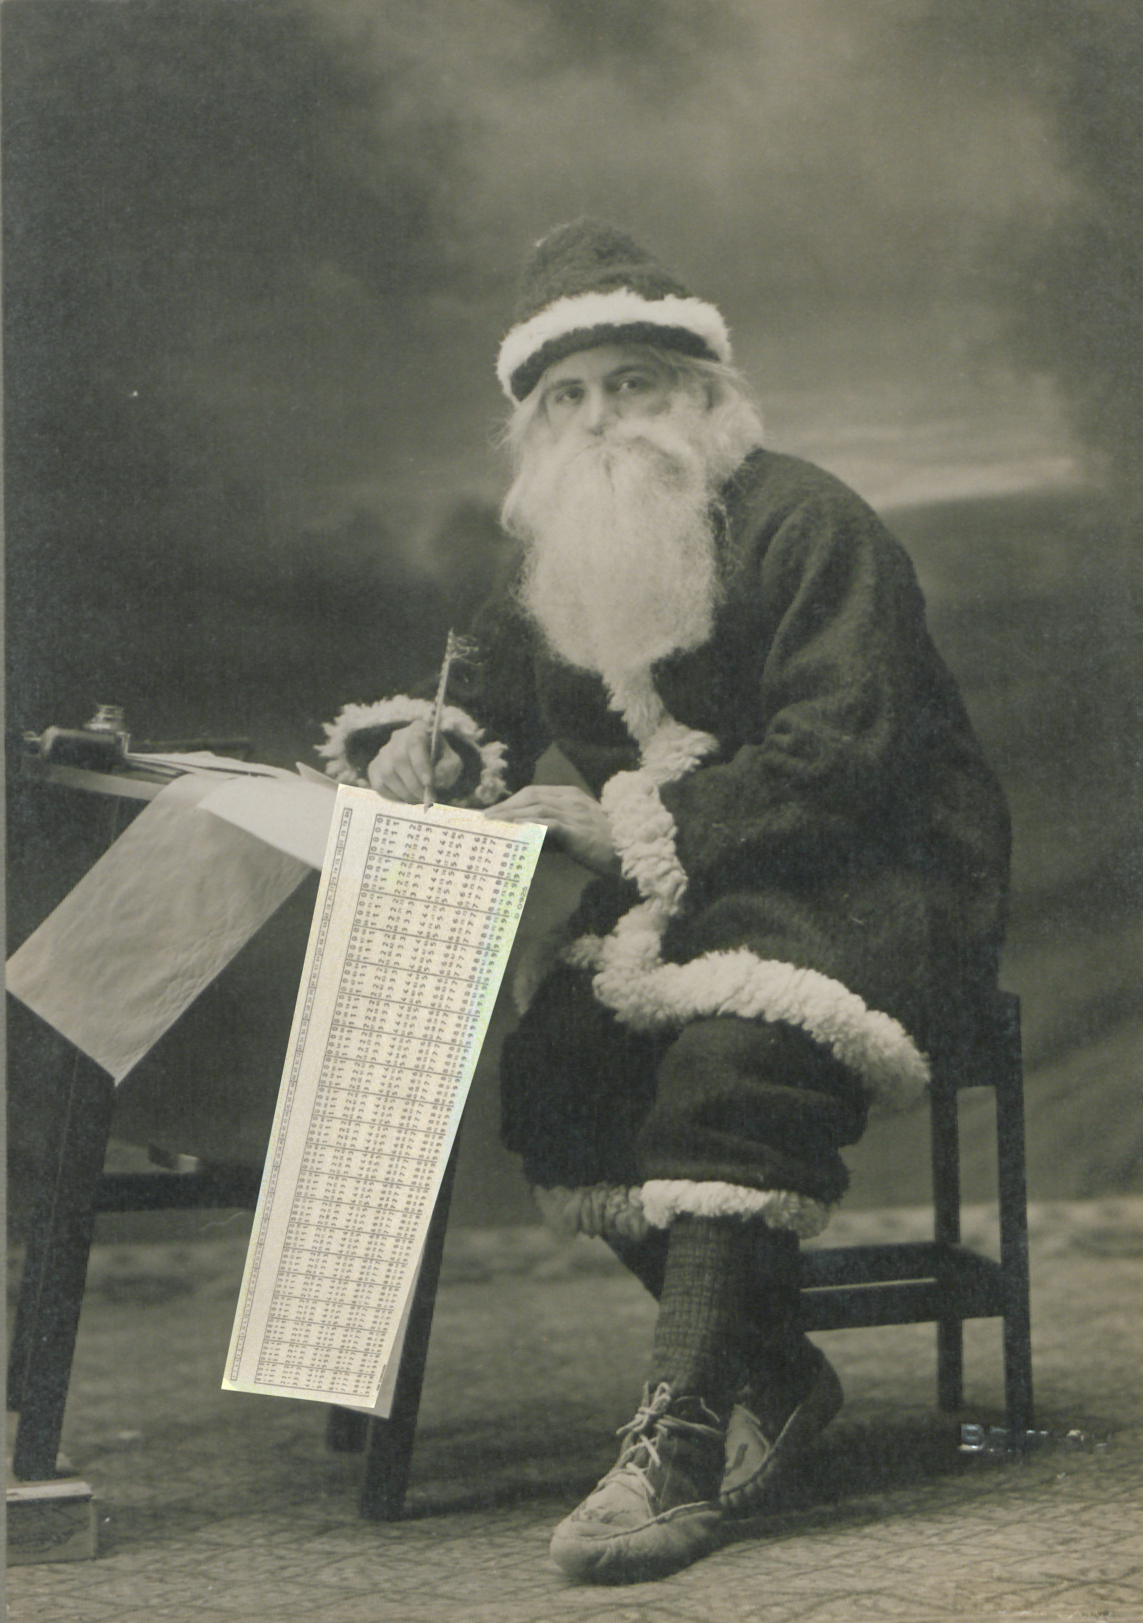 An old-timey photo of Santa Claus where a punch-card has been awkwardly photoshopped in so it looks kind of like he's writing on a punch card. It's a stupid visual gag, and not very good.